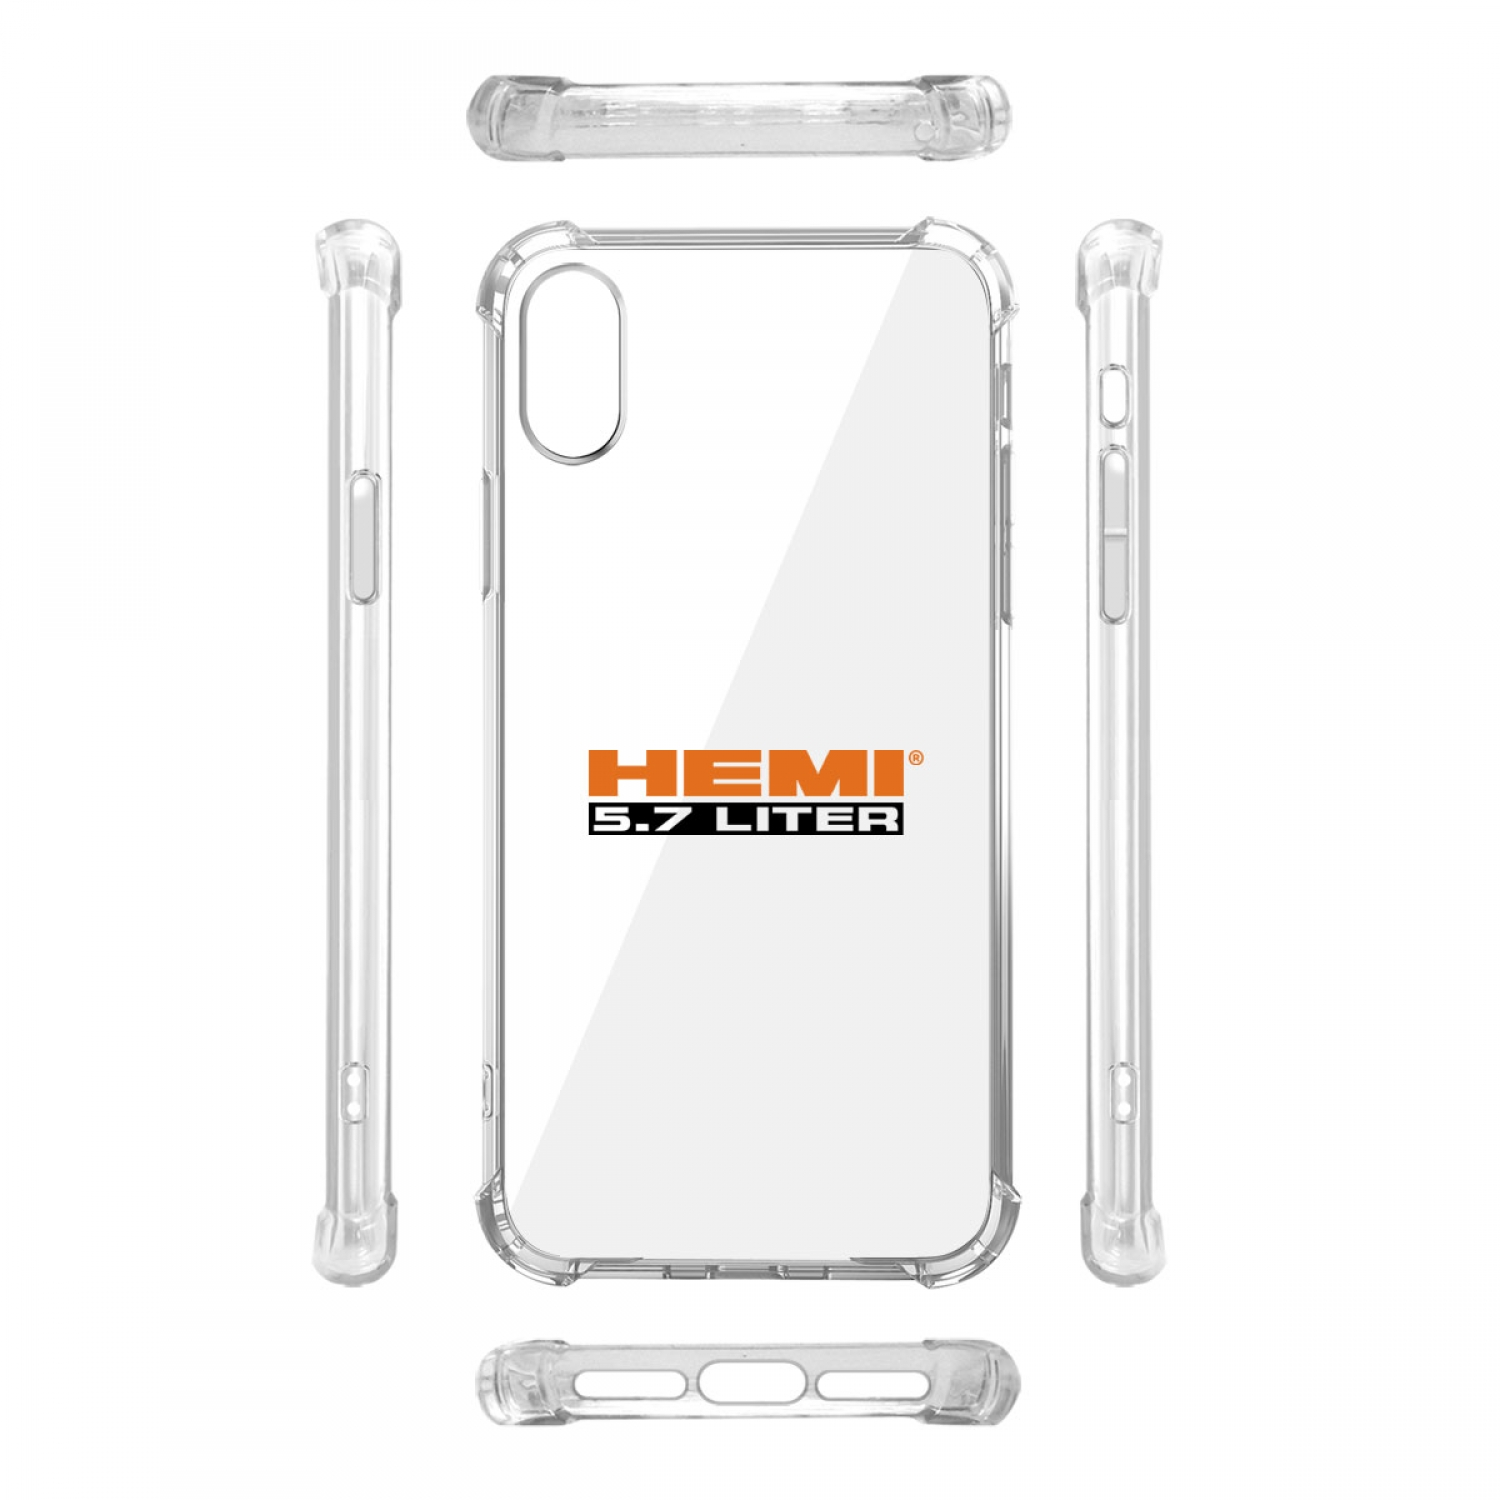 HEMI 5.7 Liter iPhone X Clear TPU Shockproof Cell Phone Case